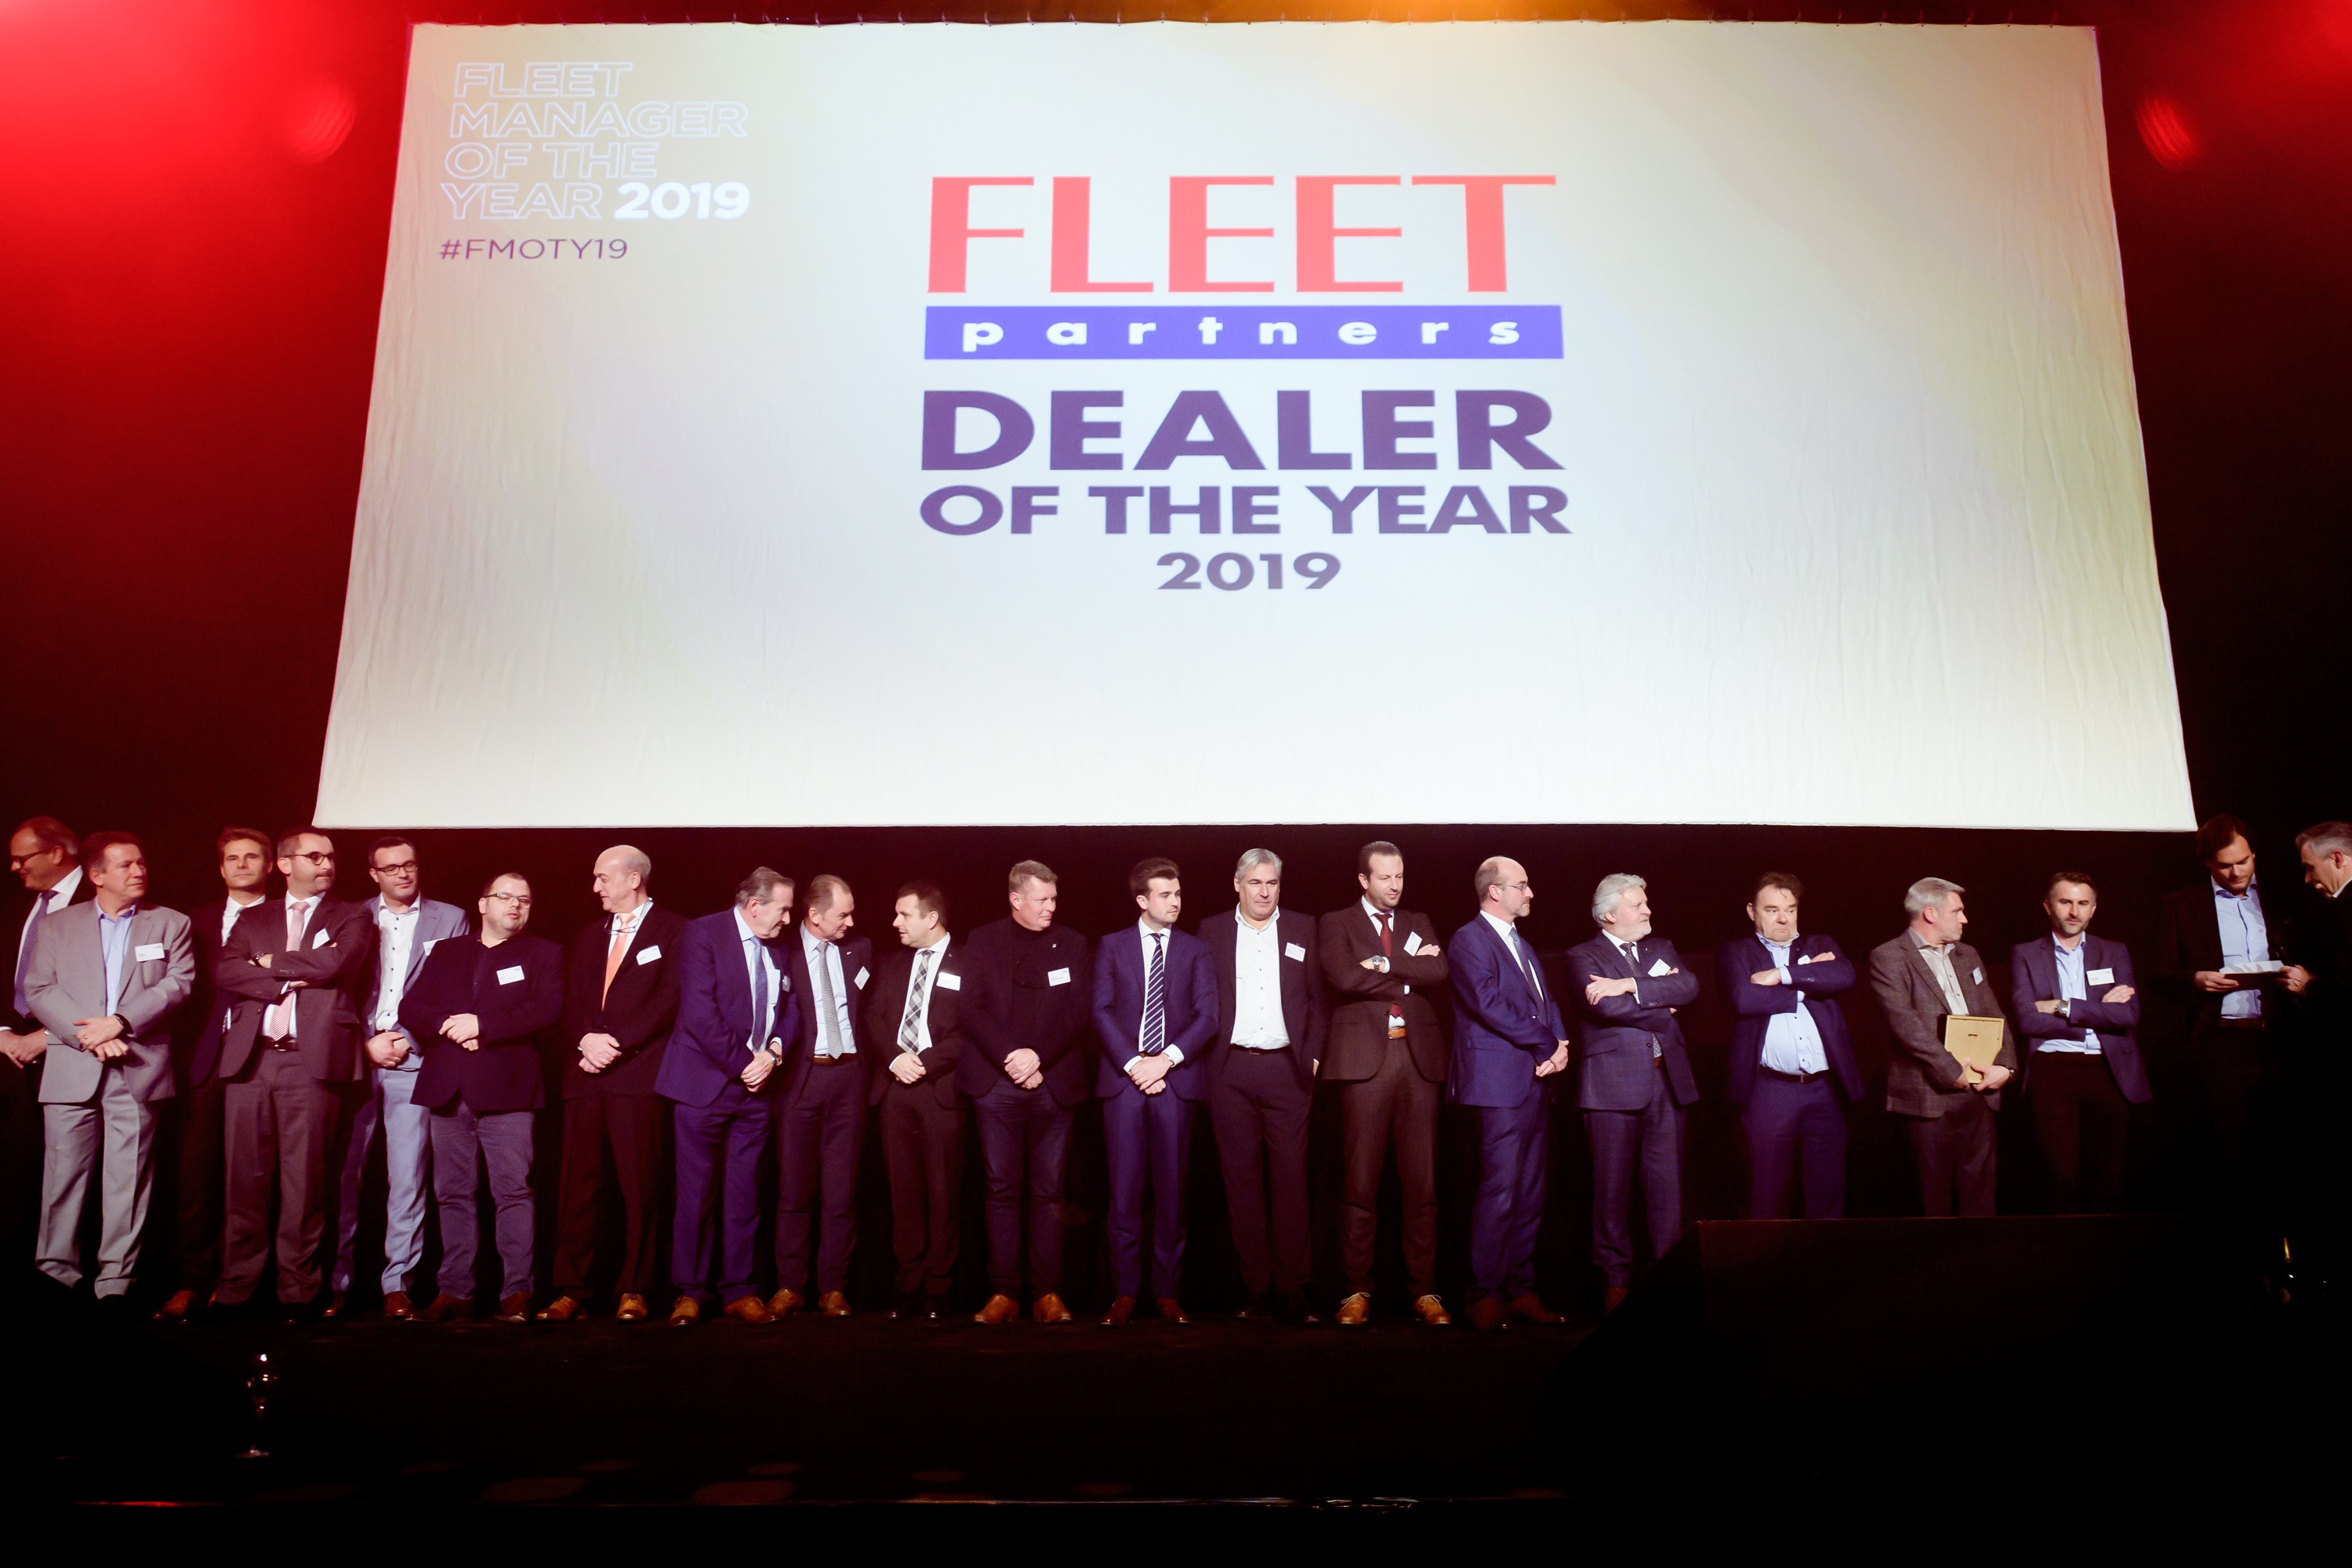 Fleet Dealer Of The Year 2019